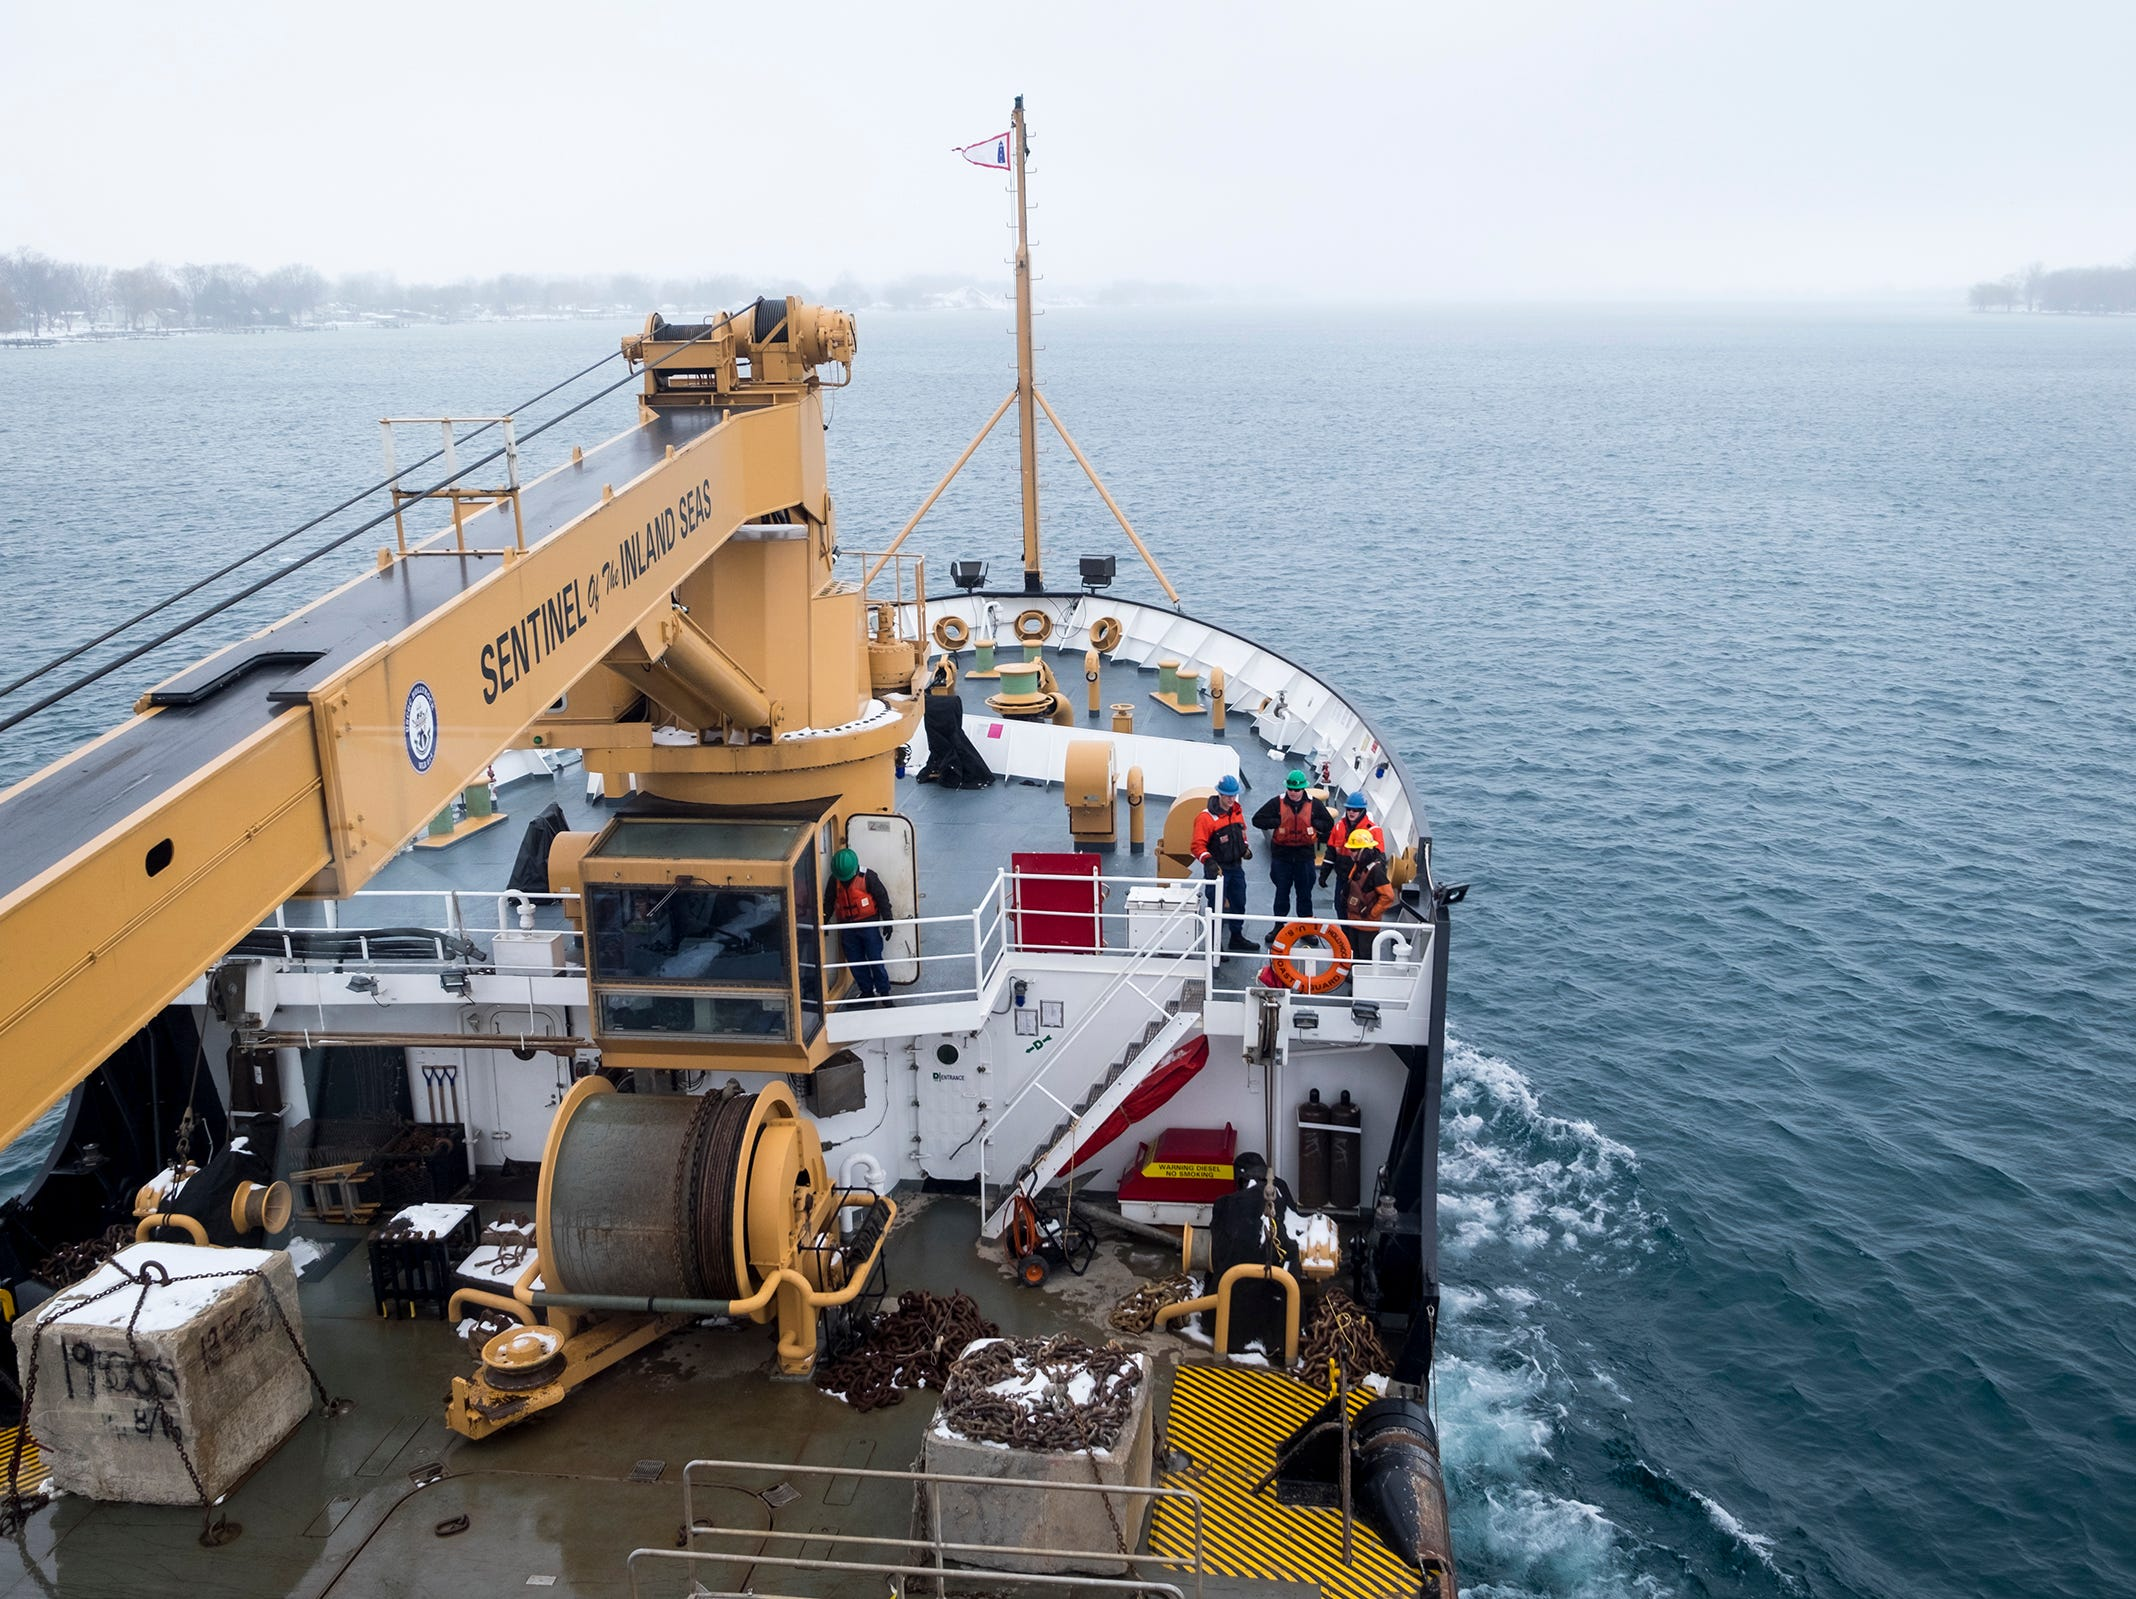 As the Hollyhock resumes travel after anchoring for maintenance, rain and fog moved into the area, limiting the crew's visibilty.